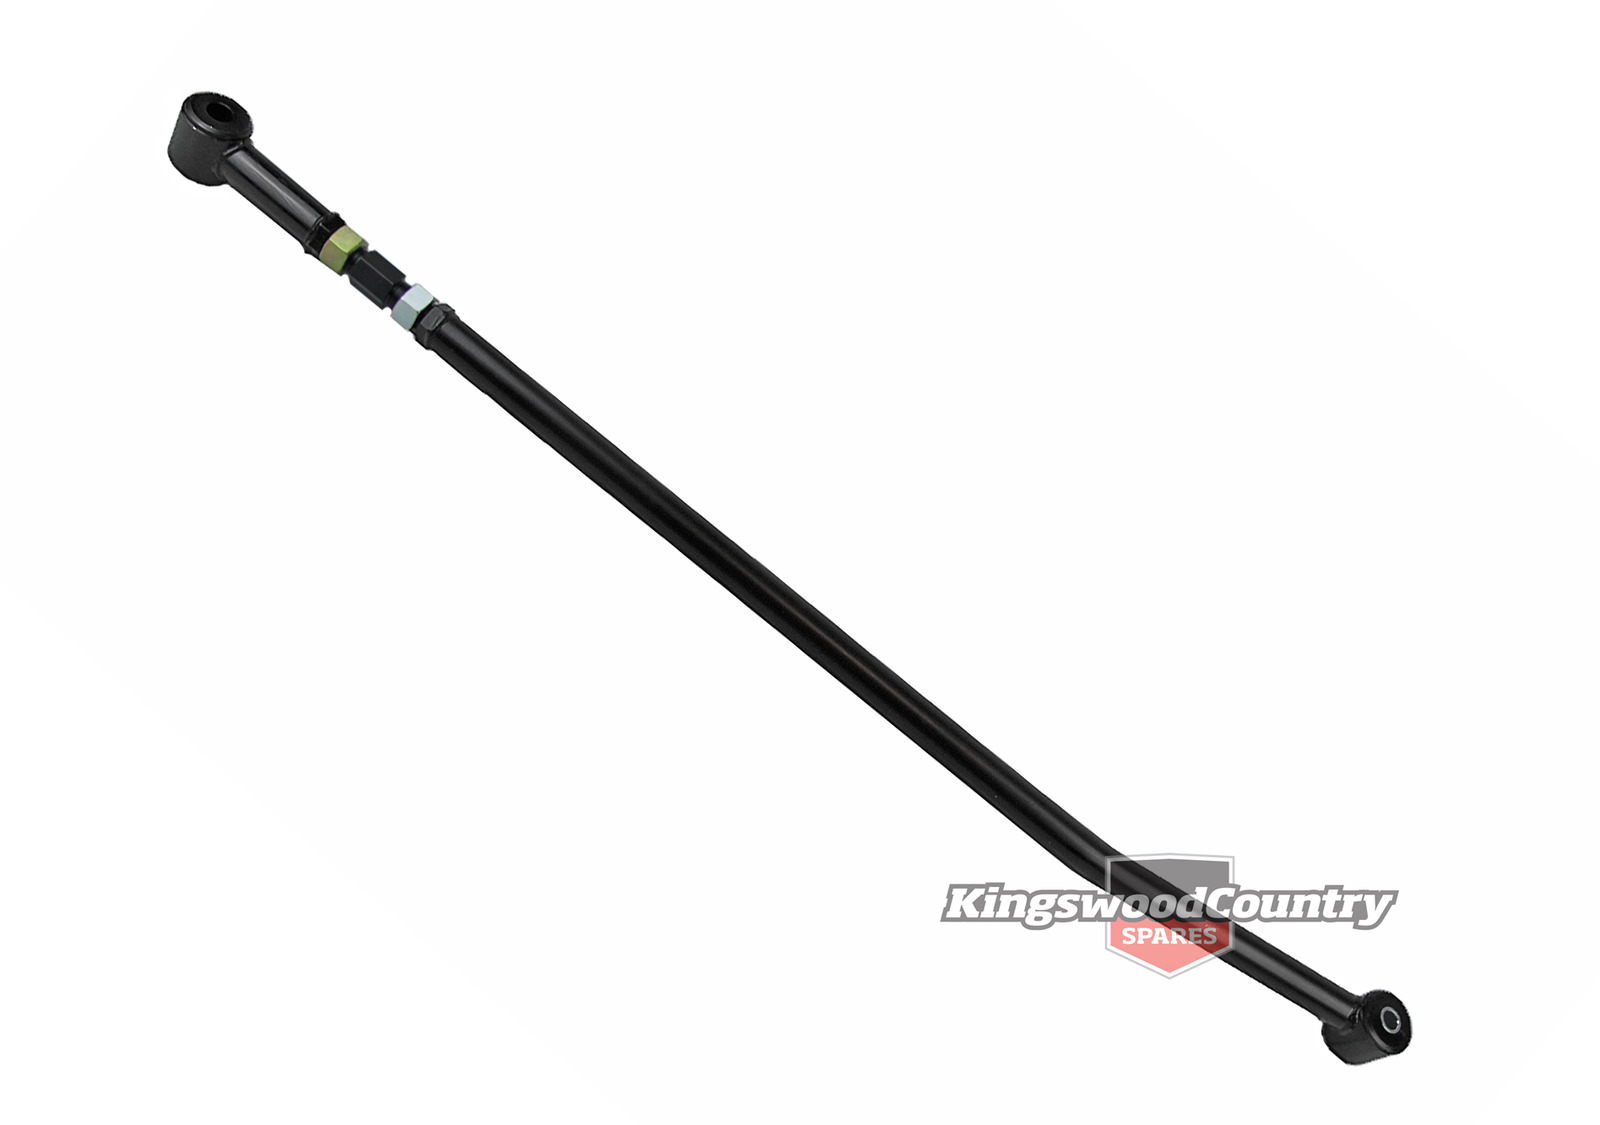 Holden Commodore Adjustable Panhard Rod VB VC VH VK VL VN